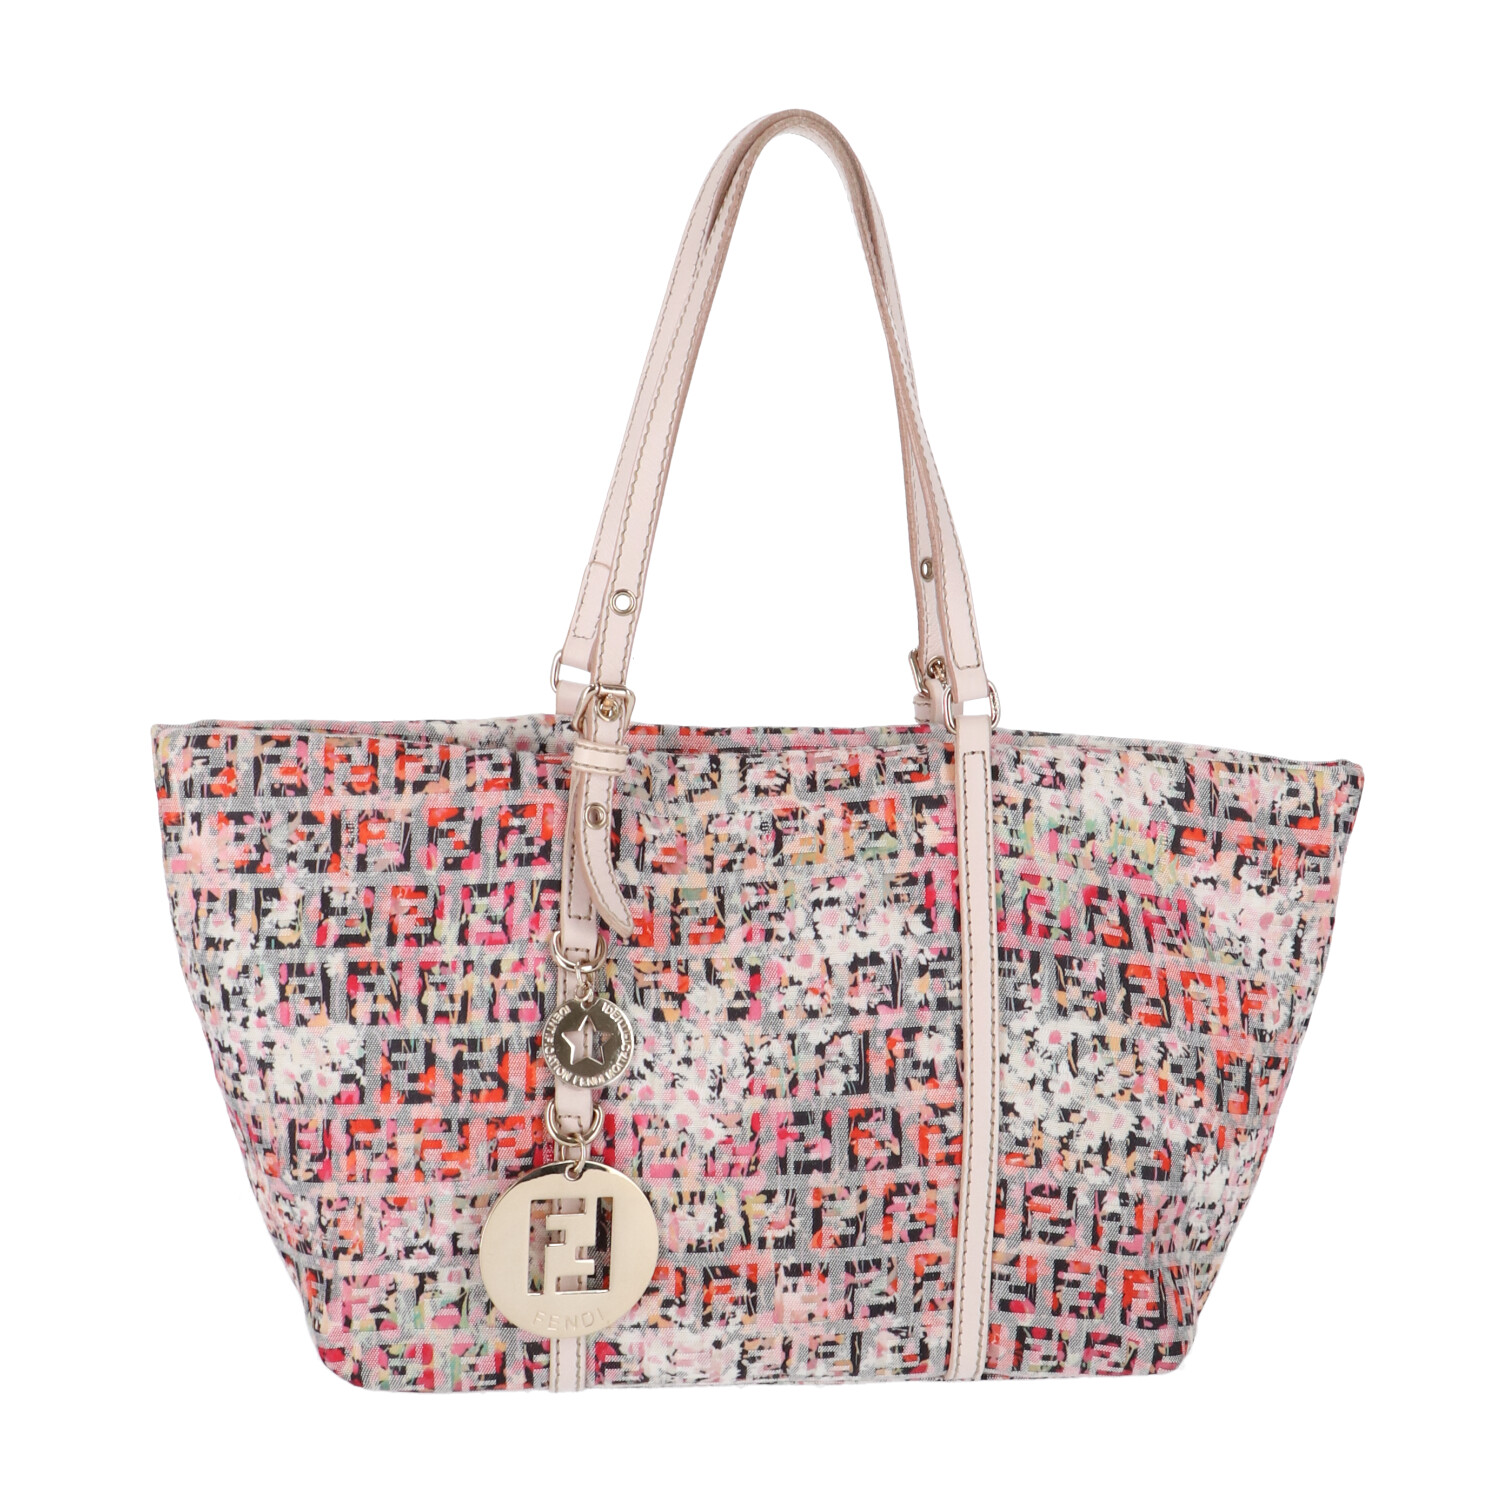 Fendi Multicolor Zucca Canvas Shoulder Bag